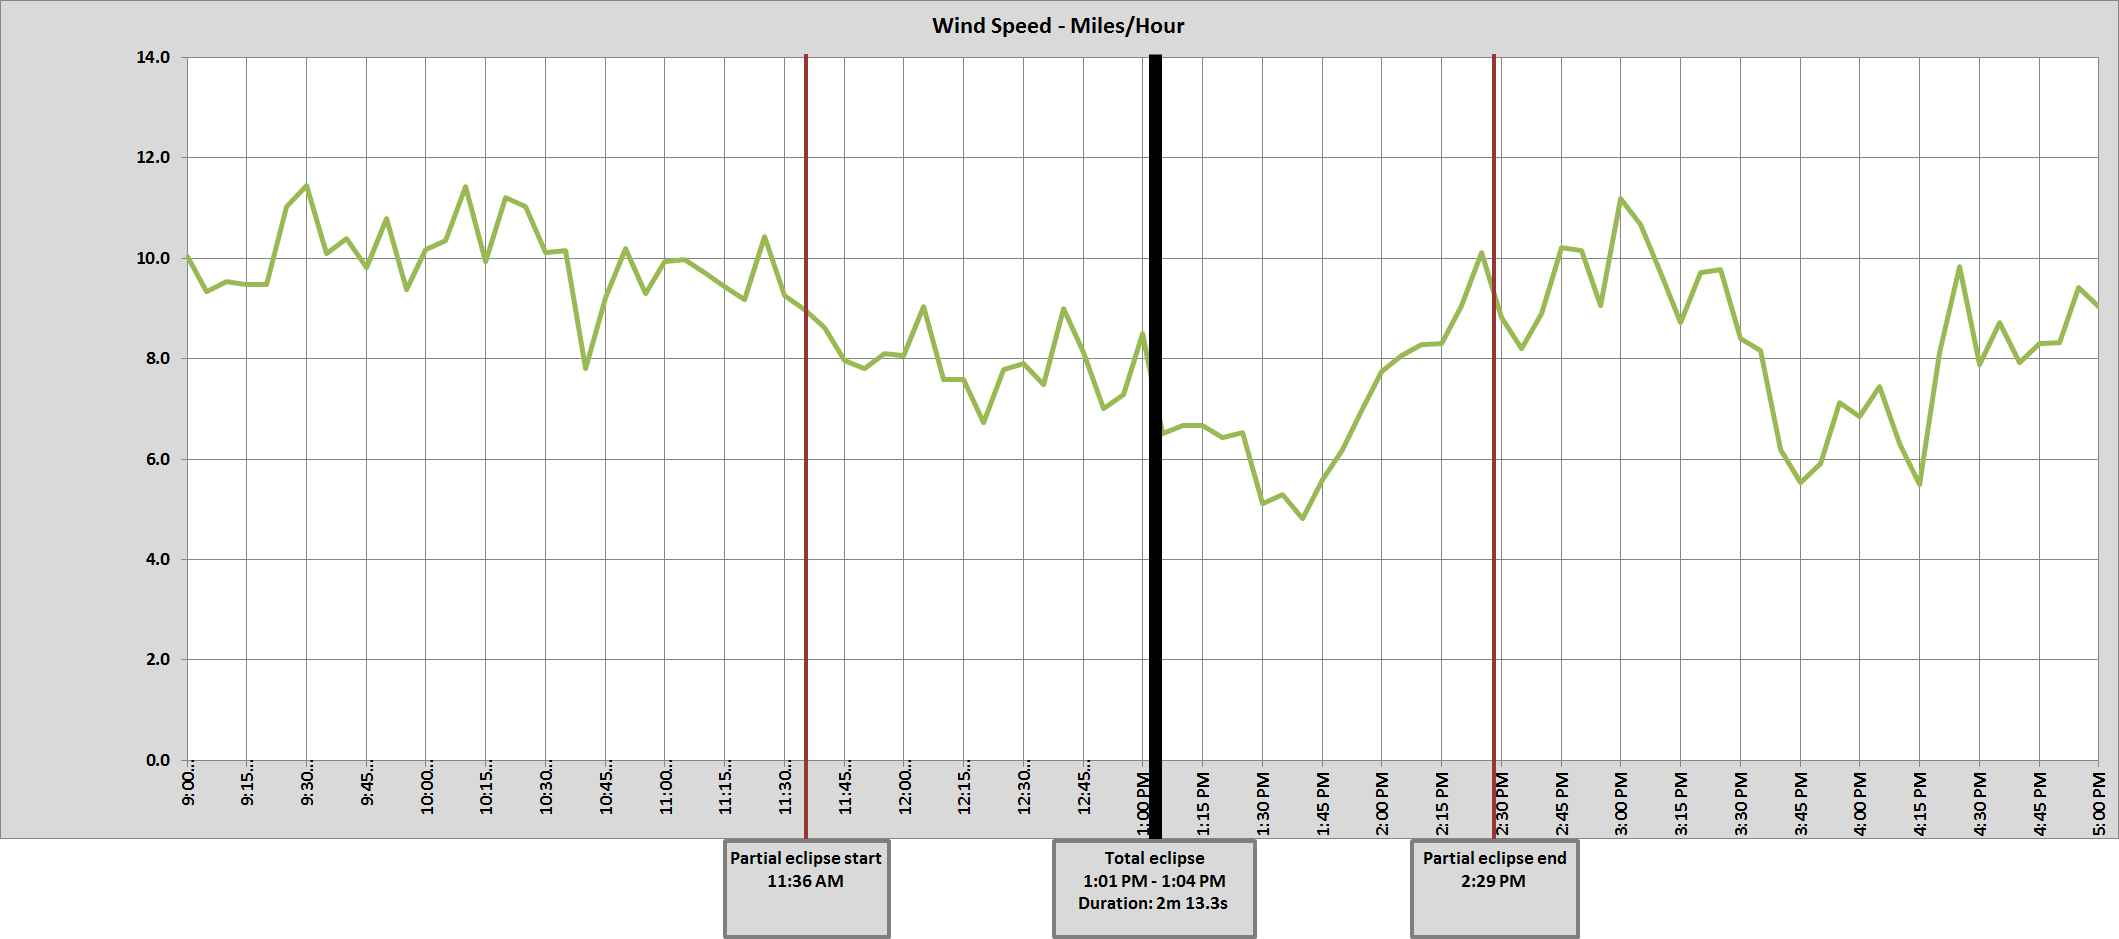 Graph of NE Lincoln 11 SW wind speed